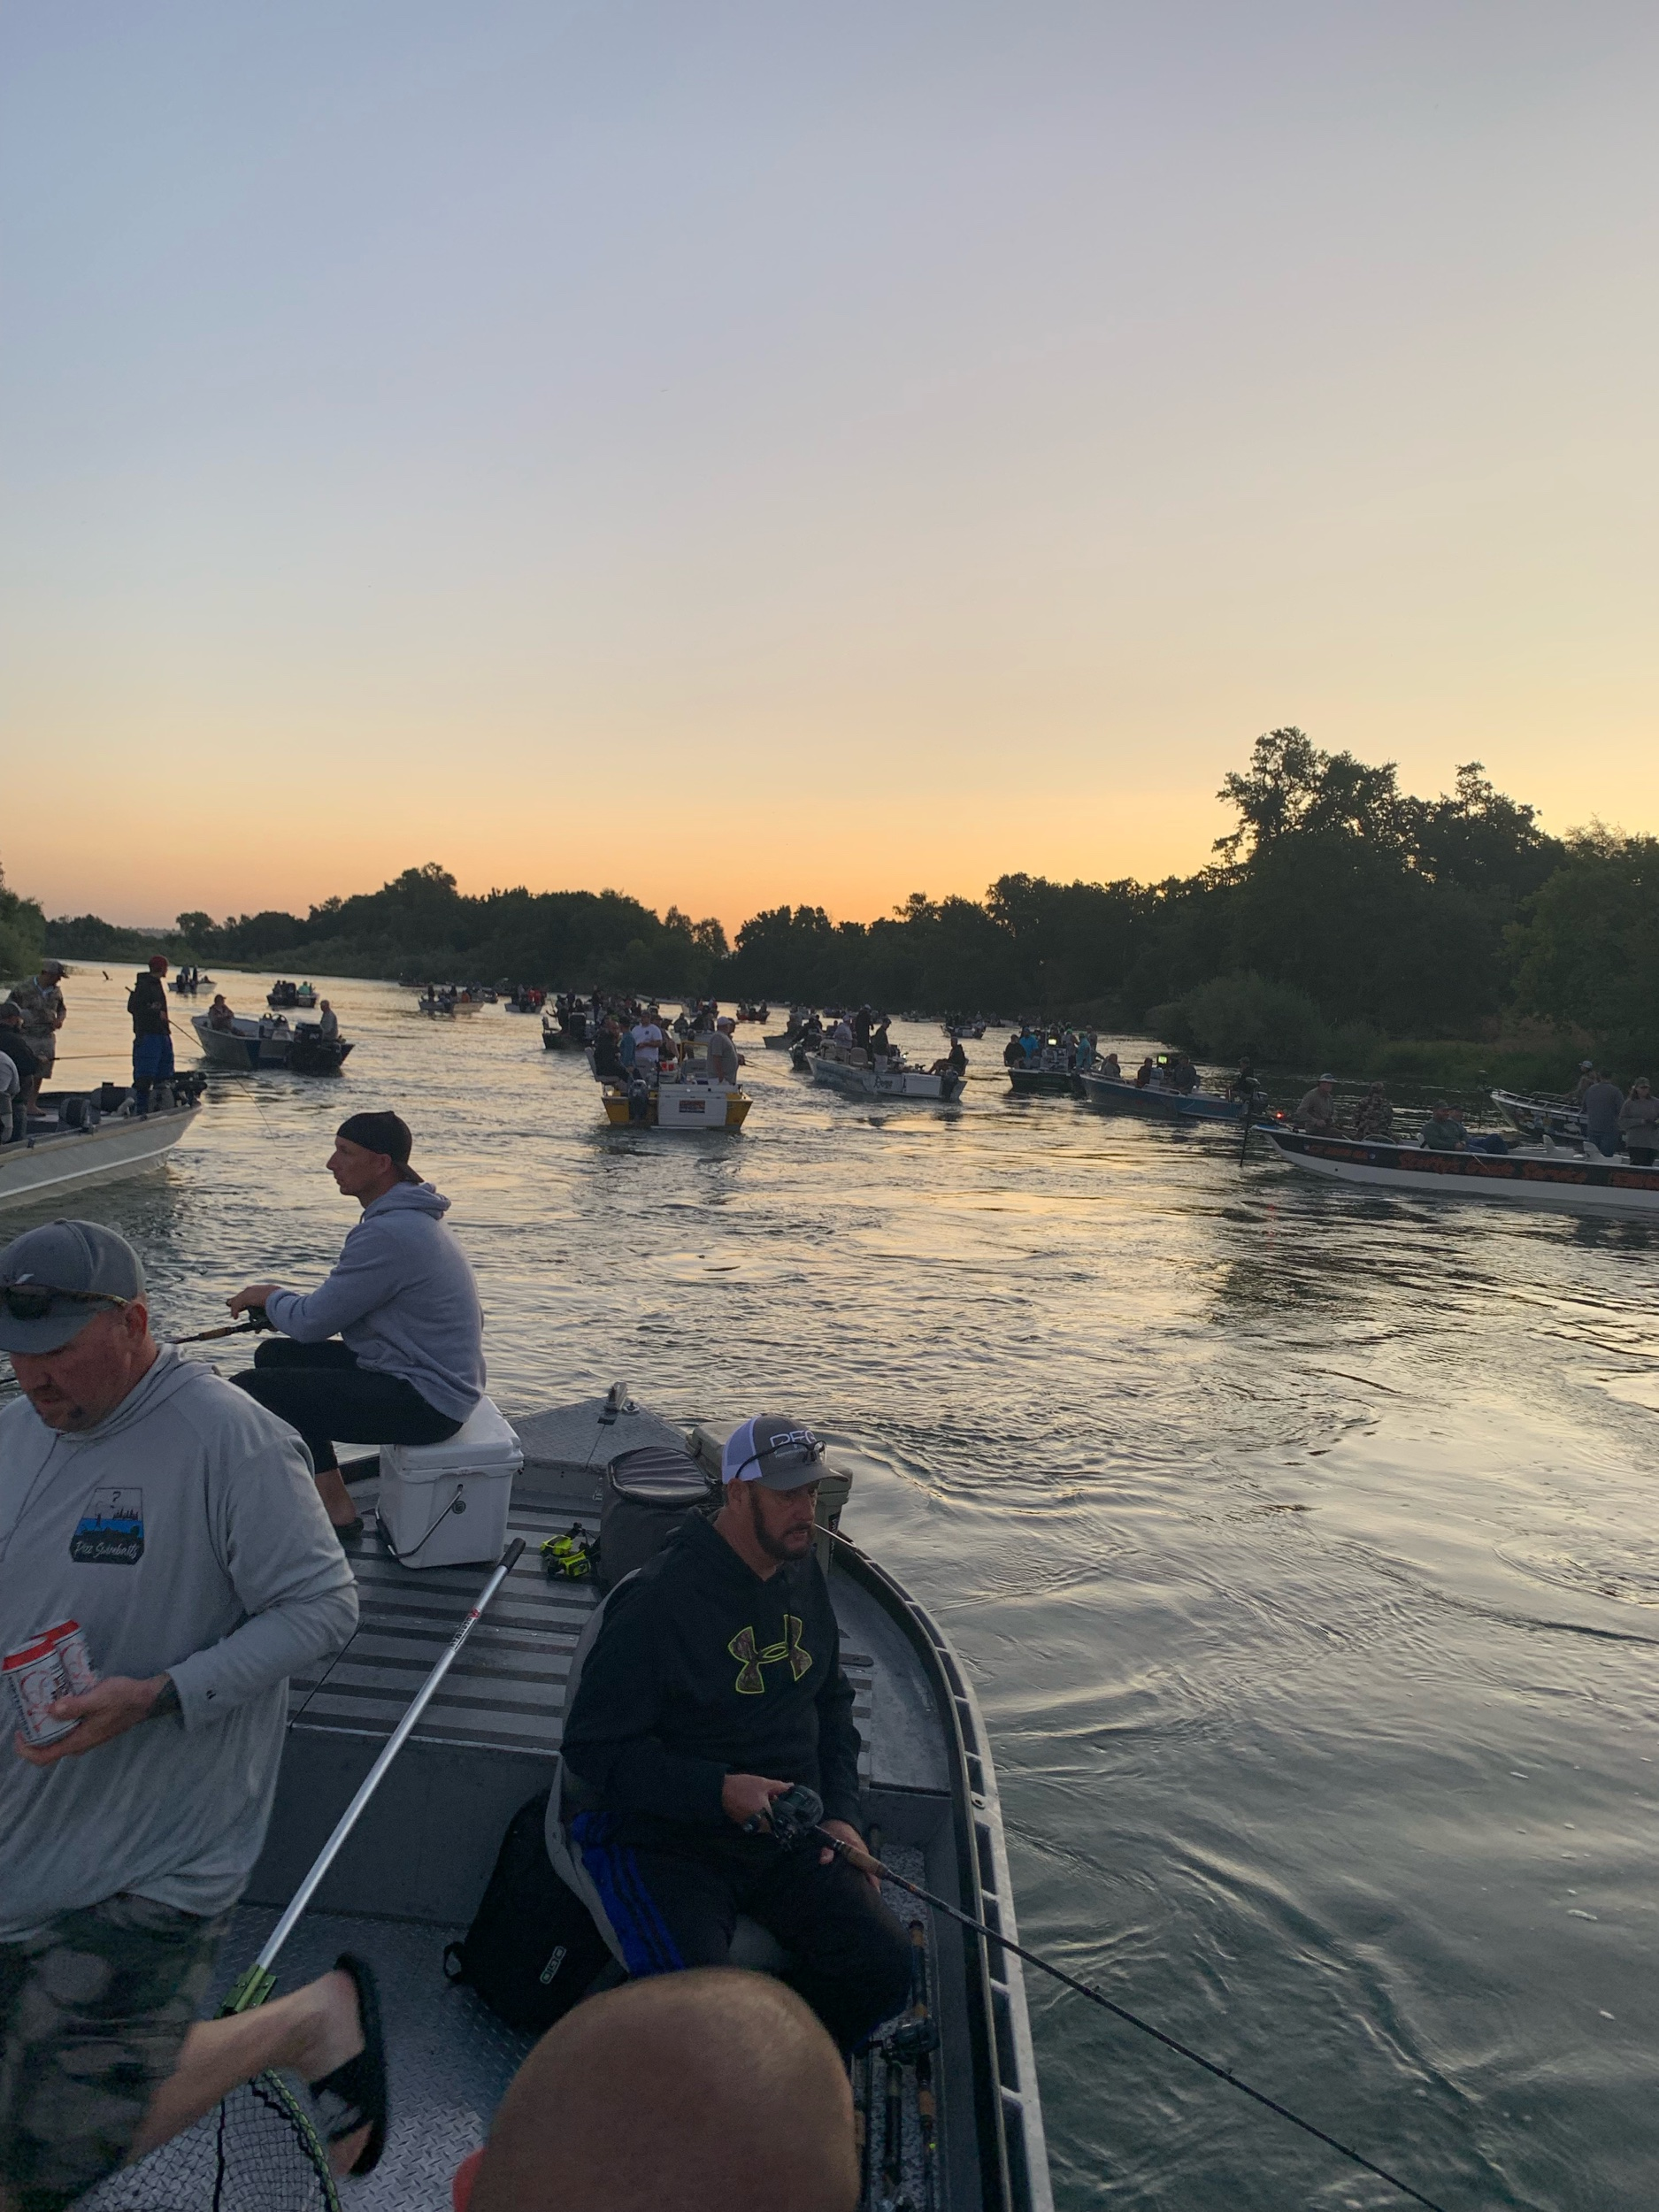 Opening morning at the Barge Hole prior to sunrise. Salmon fishing guide Mike Rasmussen snaps a shot of the action taking place on the Sacramento River.